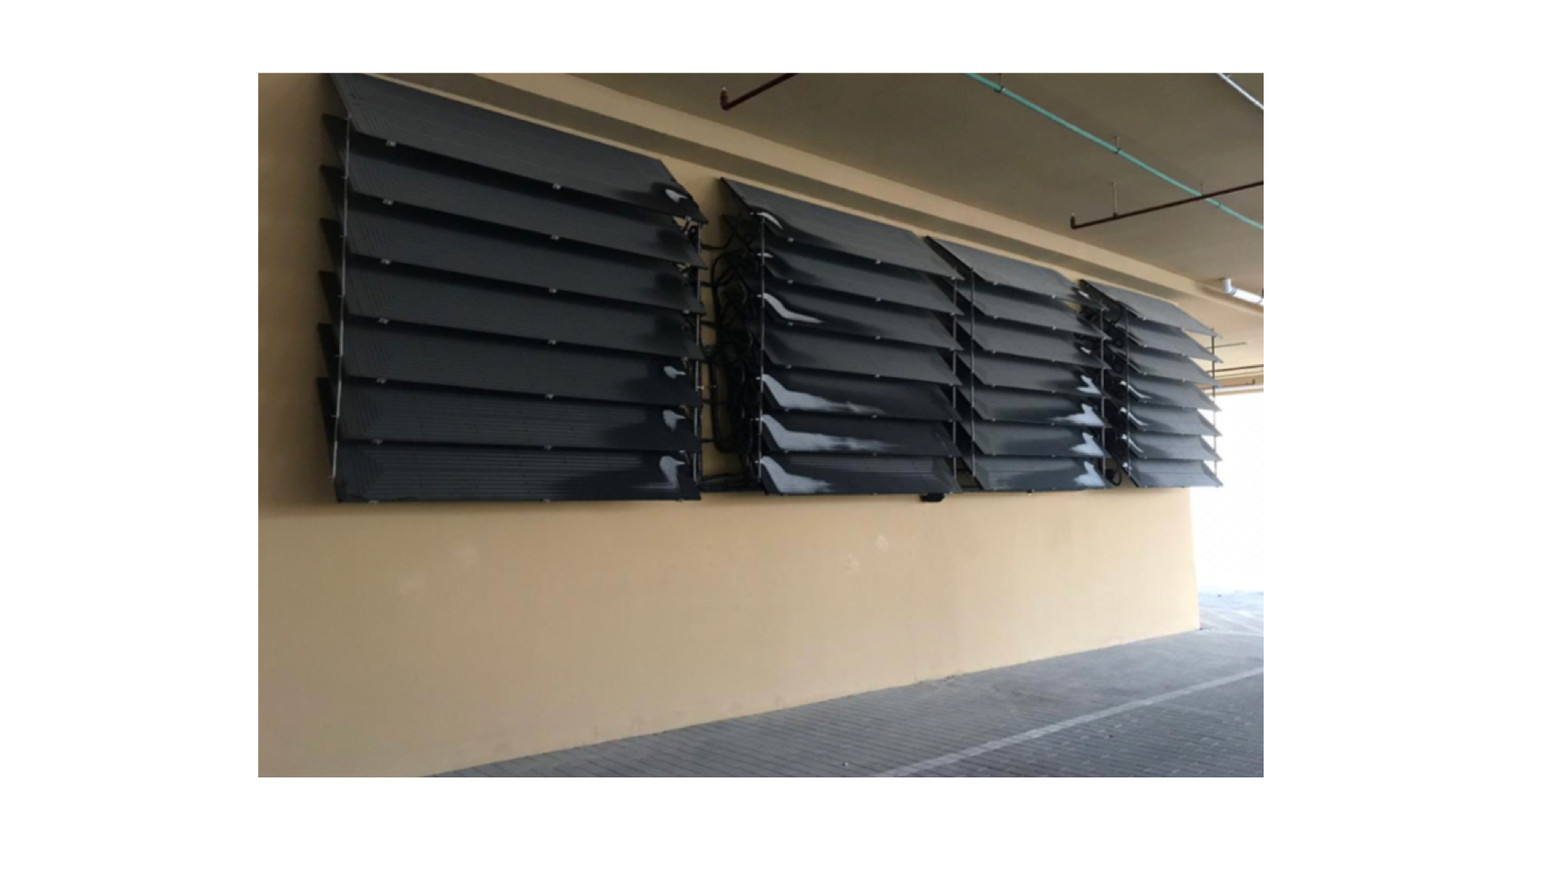 Energie SHW: Panels stacked in parking enclosure